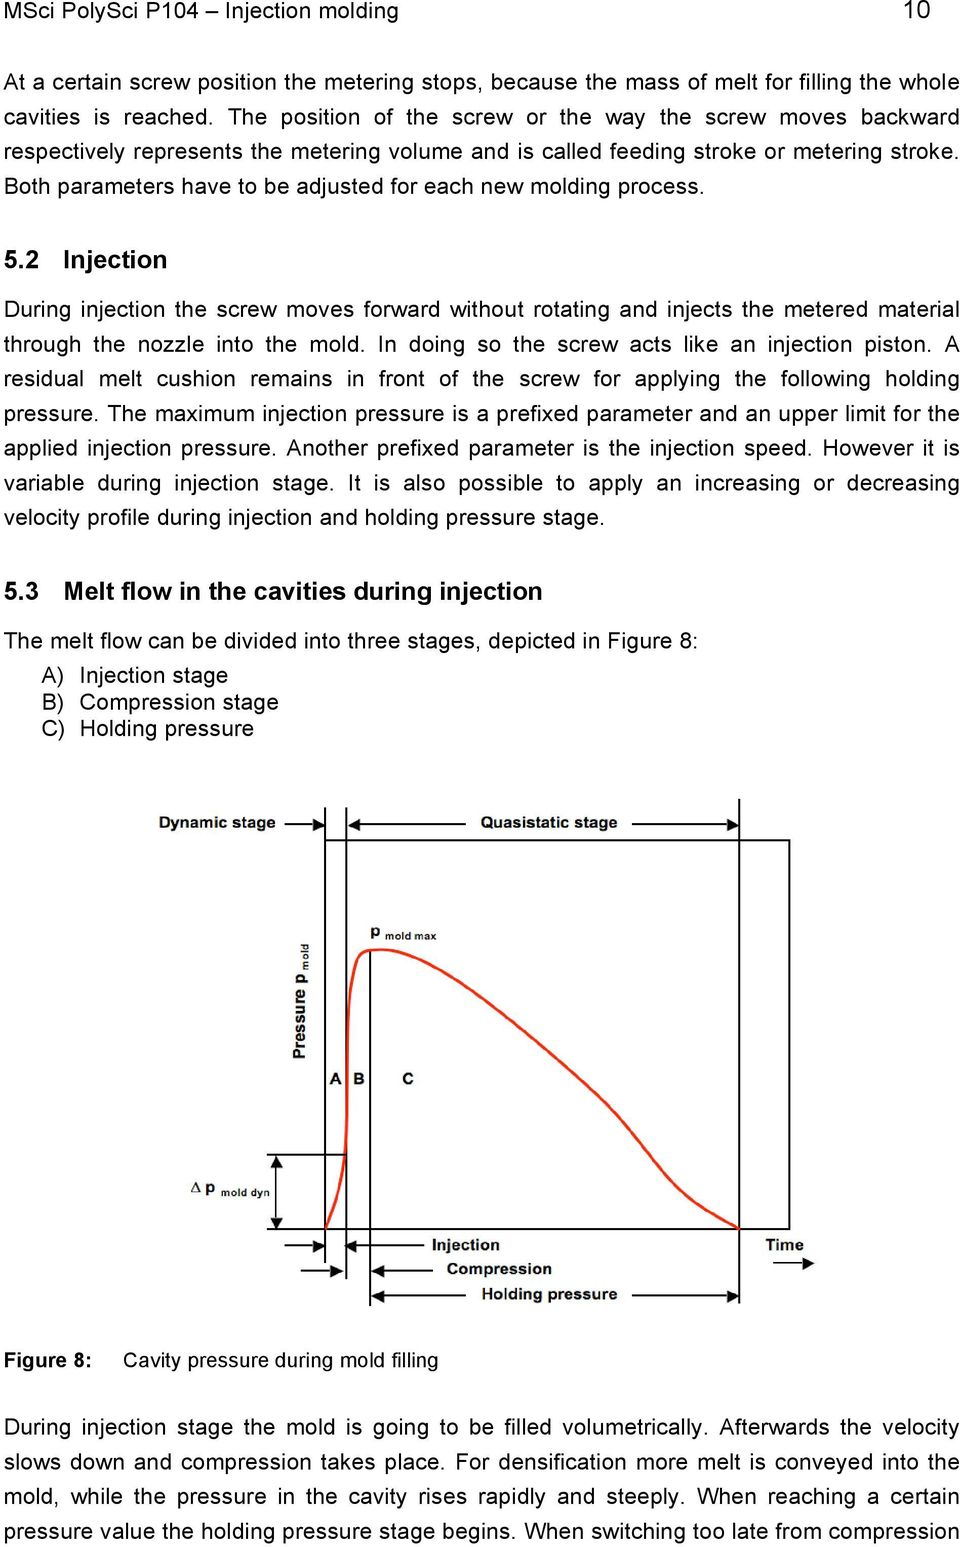 Msci Polysci Lab Modul P104 P Injection Molding Process Flow Diagram Reaction Moulding Both Parameters Have To Be Adjusted For Each New 5